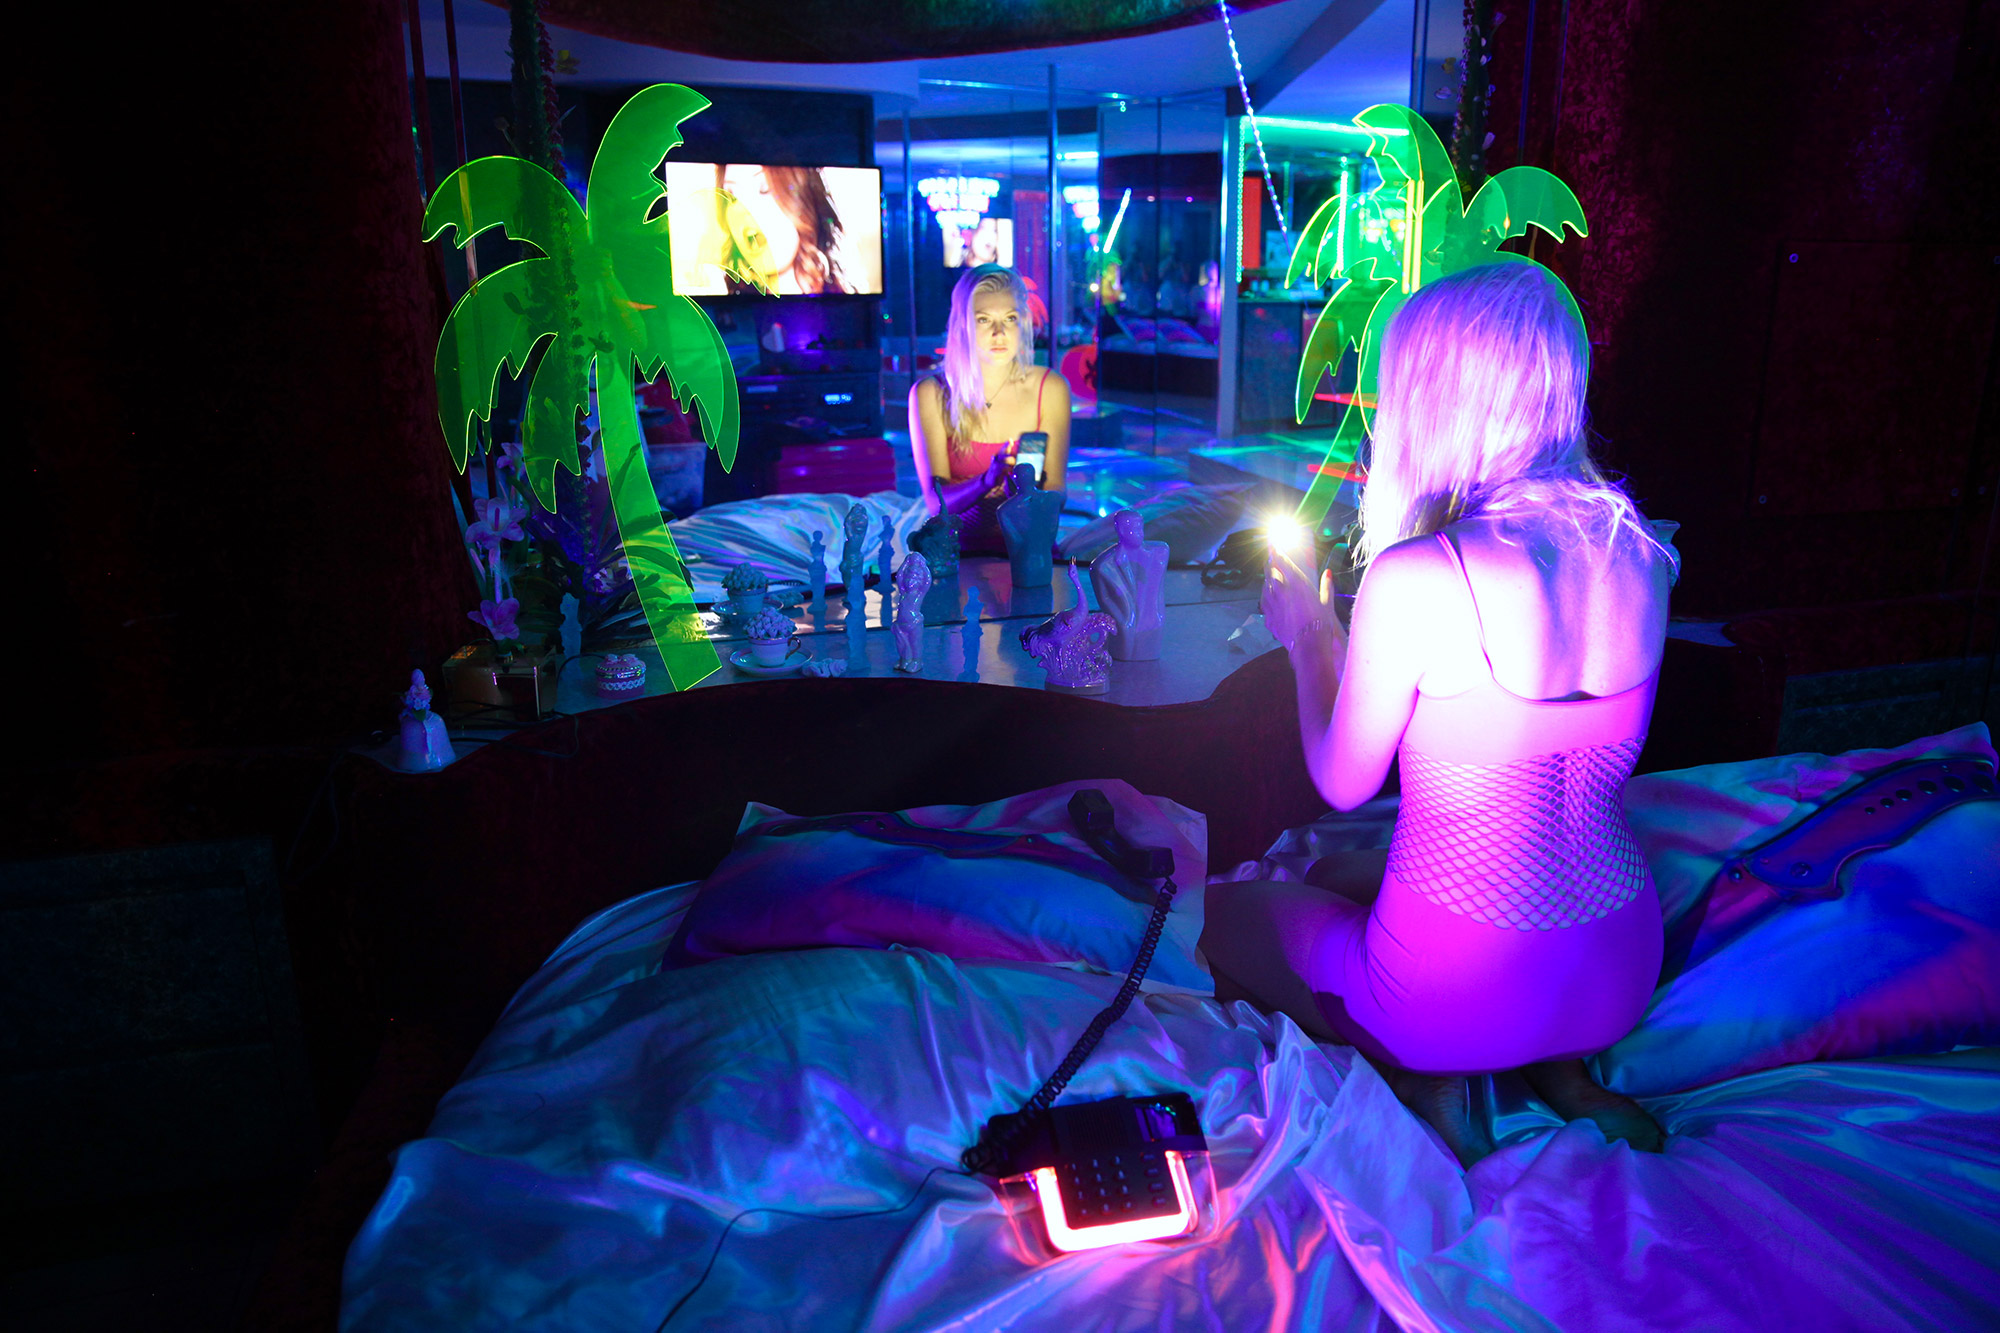 Motelscape: A Surreal Full-Room Critique of Fantasy and Commodified Desires